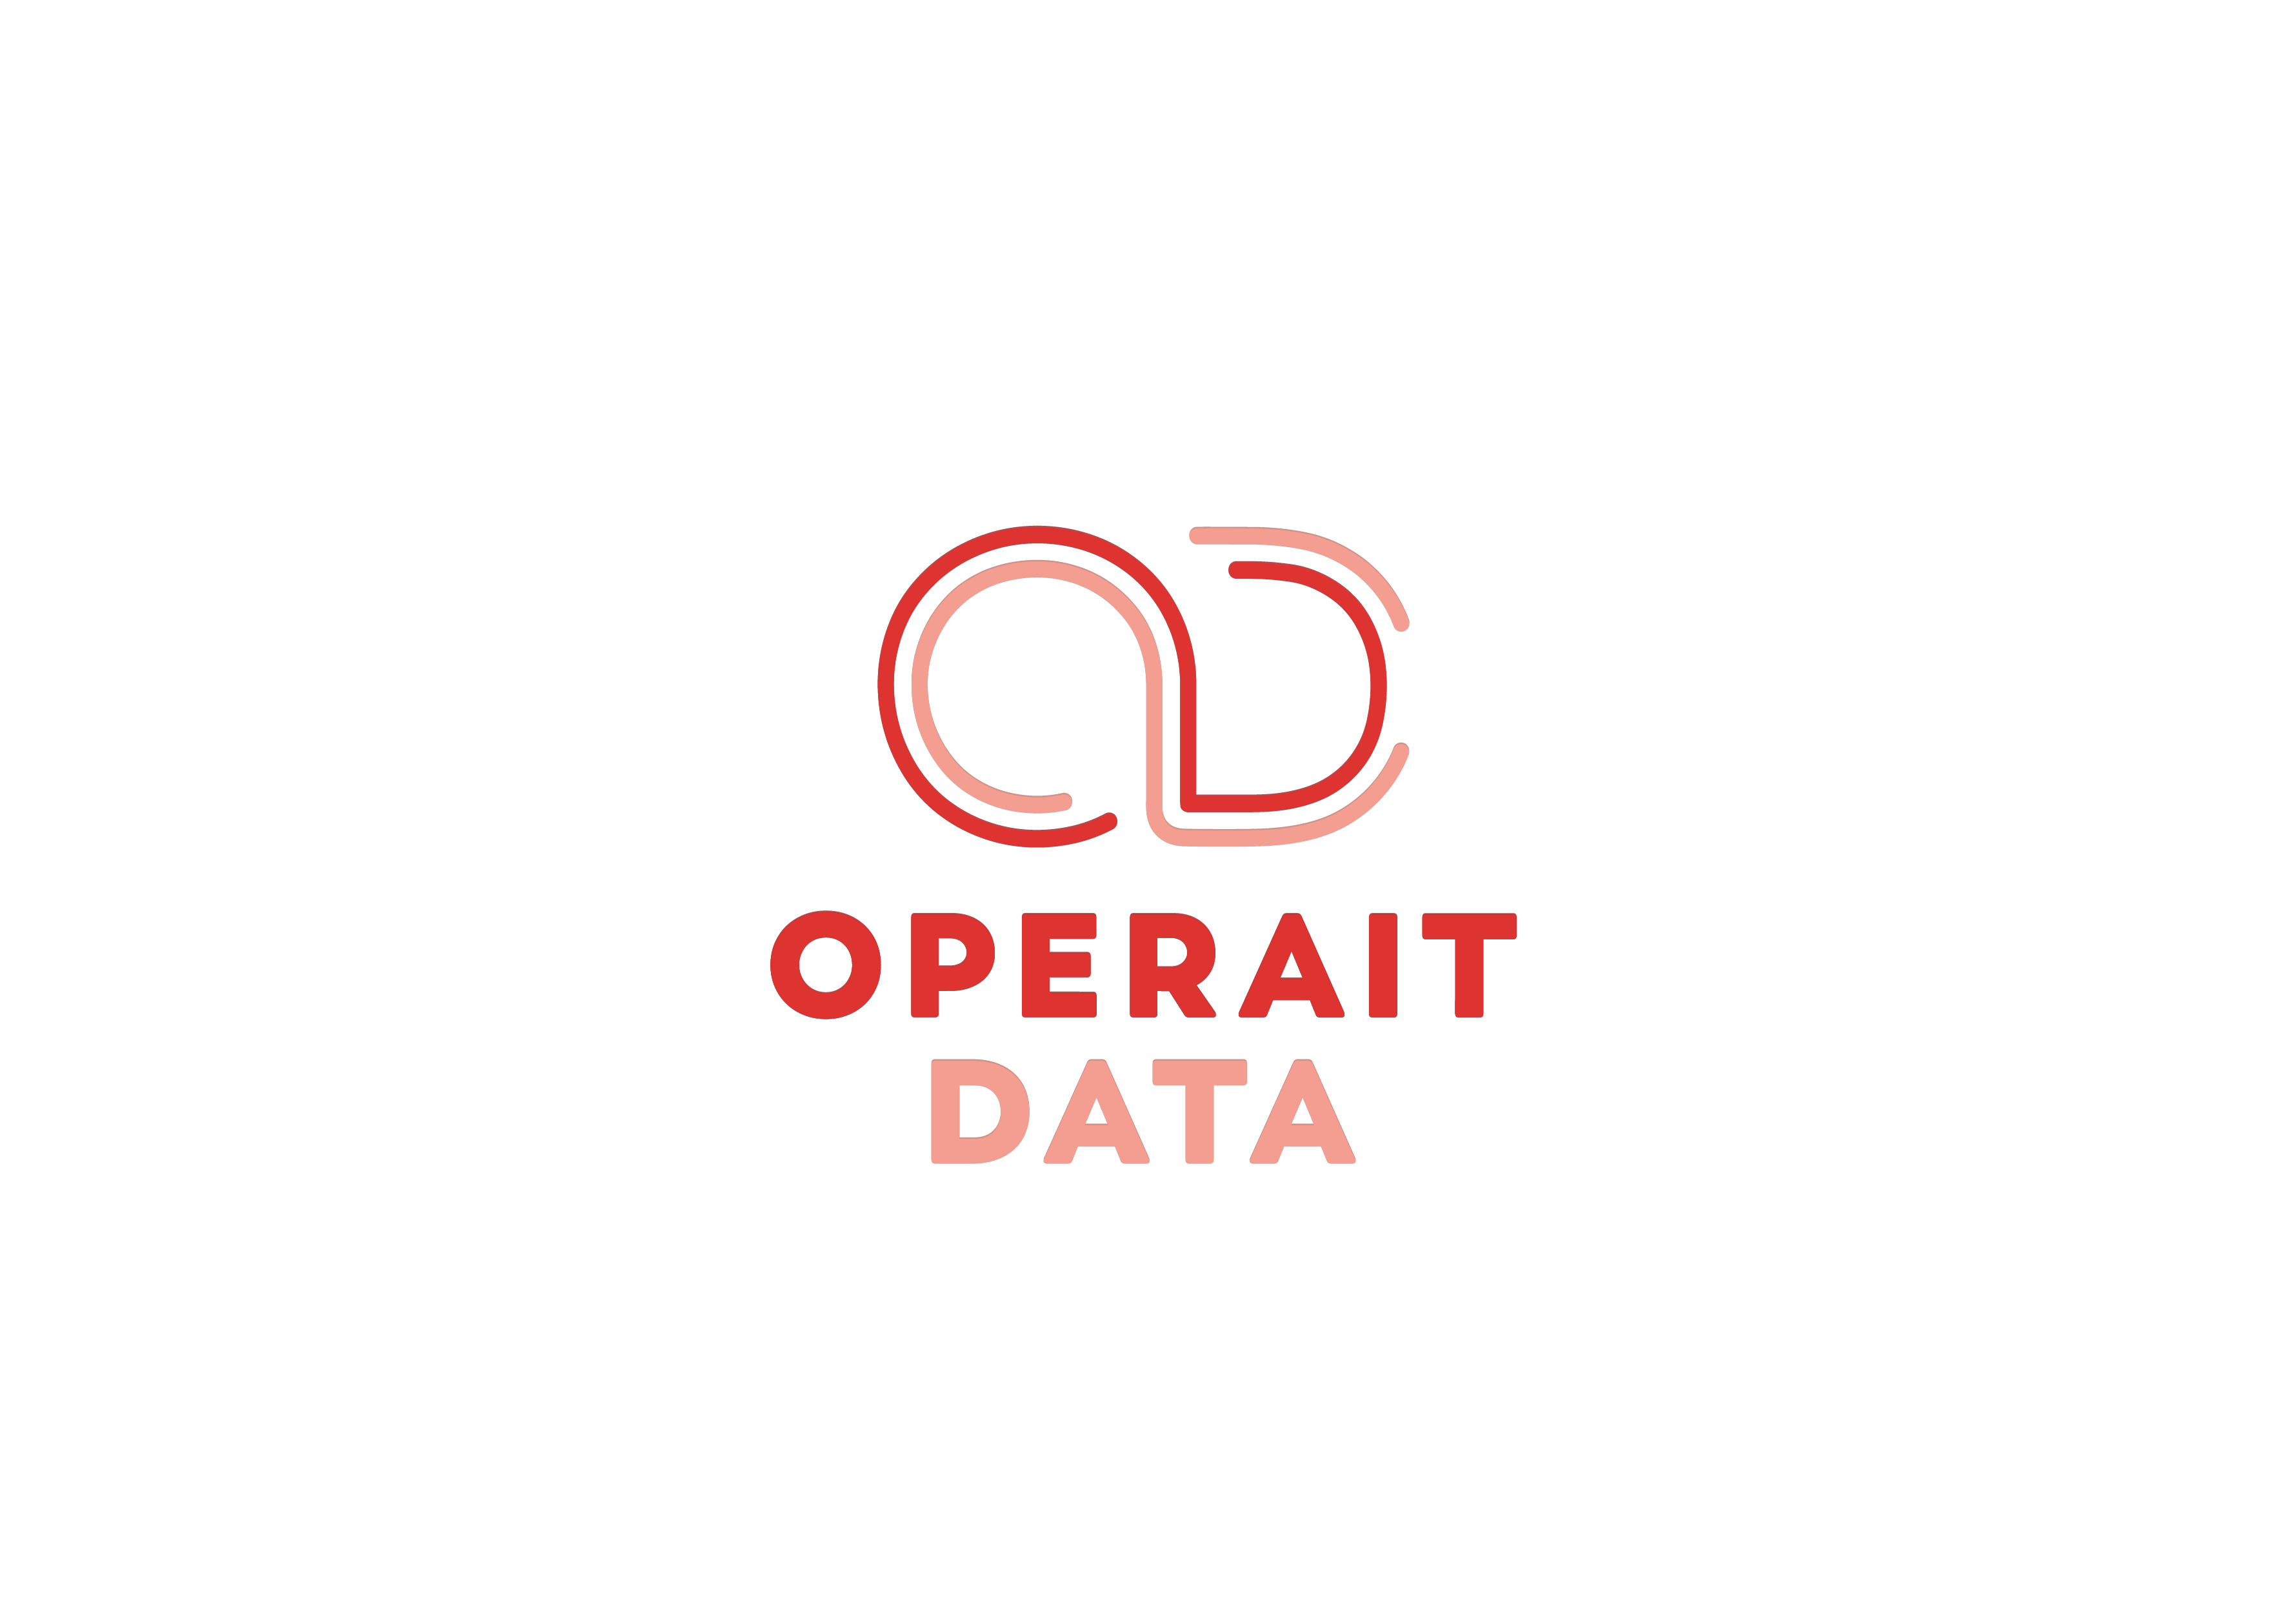 Operait_Data_Stacked-01